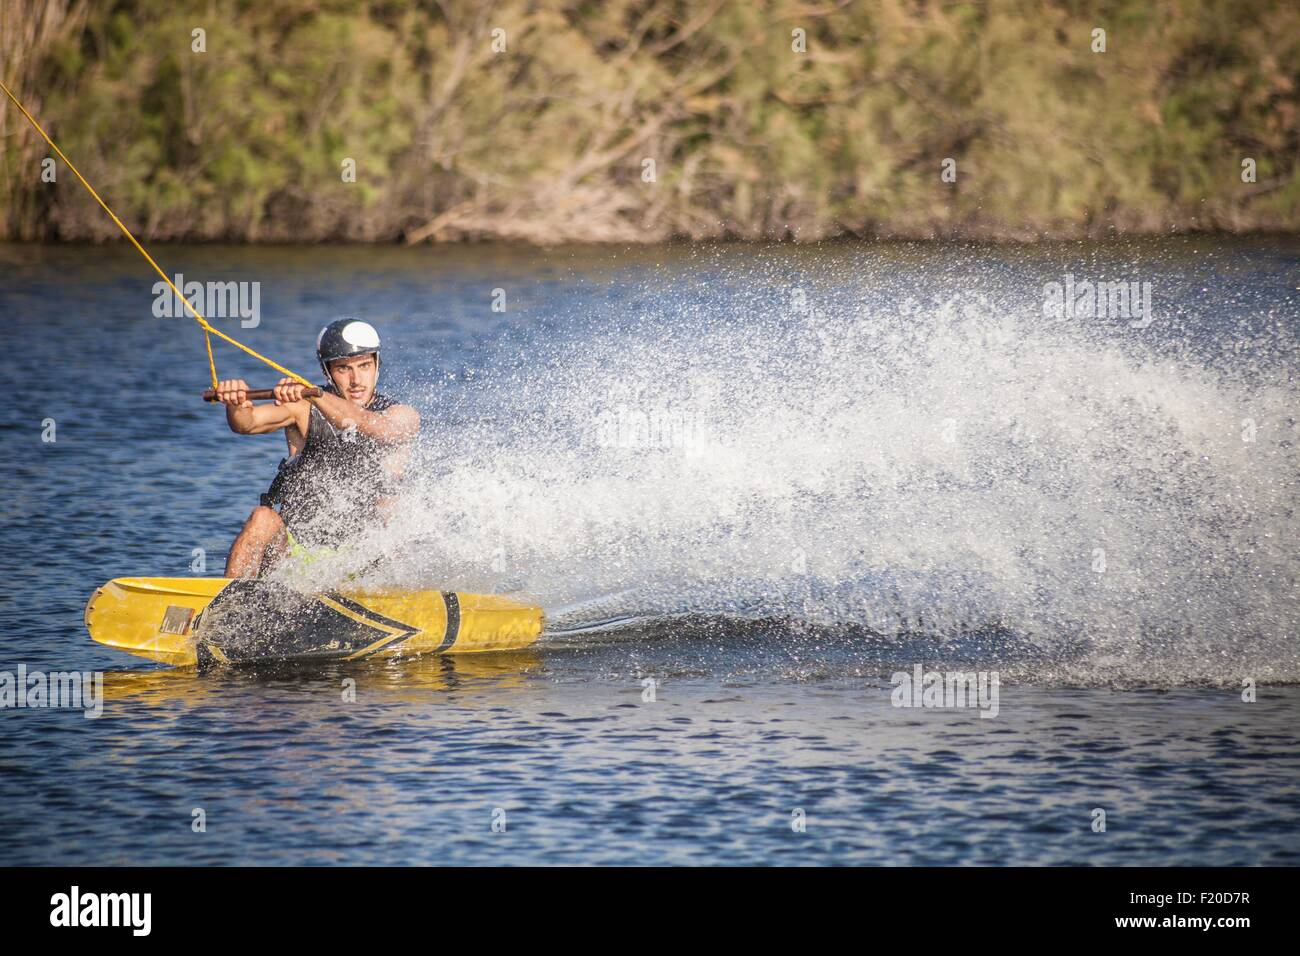 Mid adult man wakeboarding in sea, Cagliari, Sardinia, Italy - Stock Image